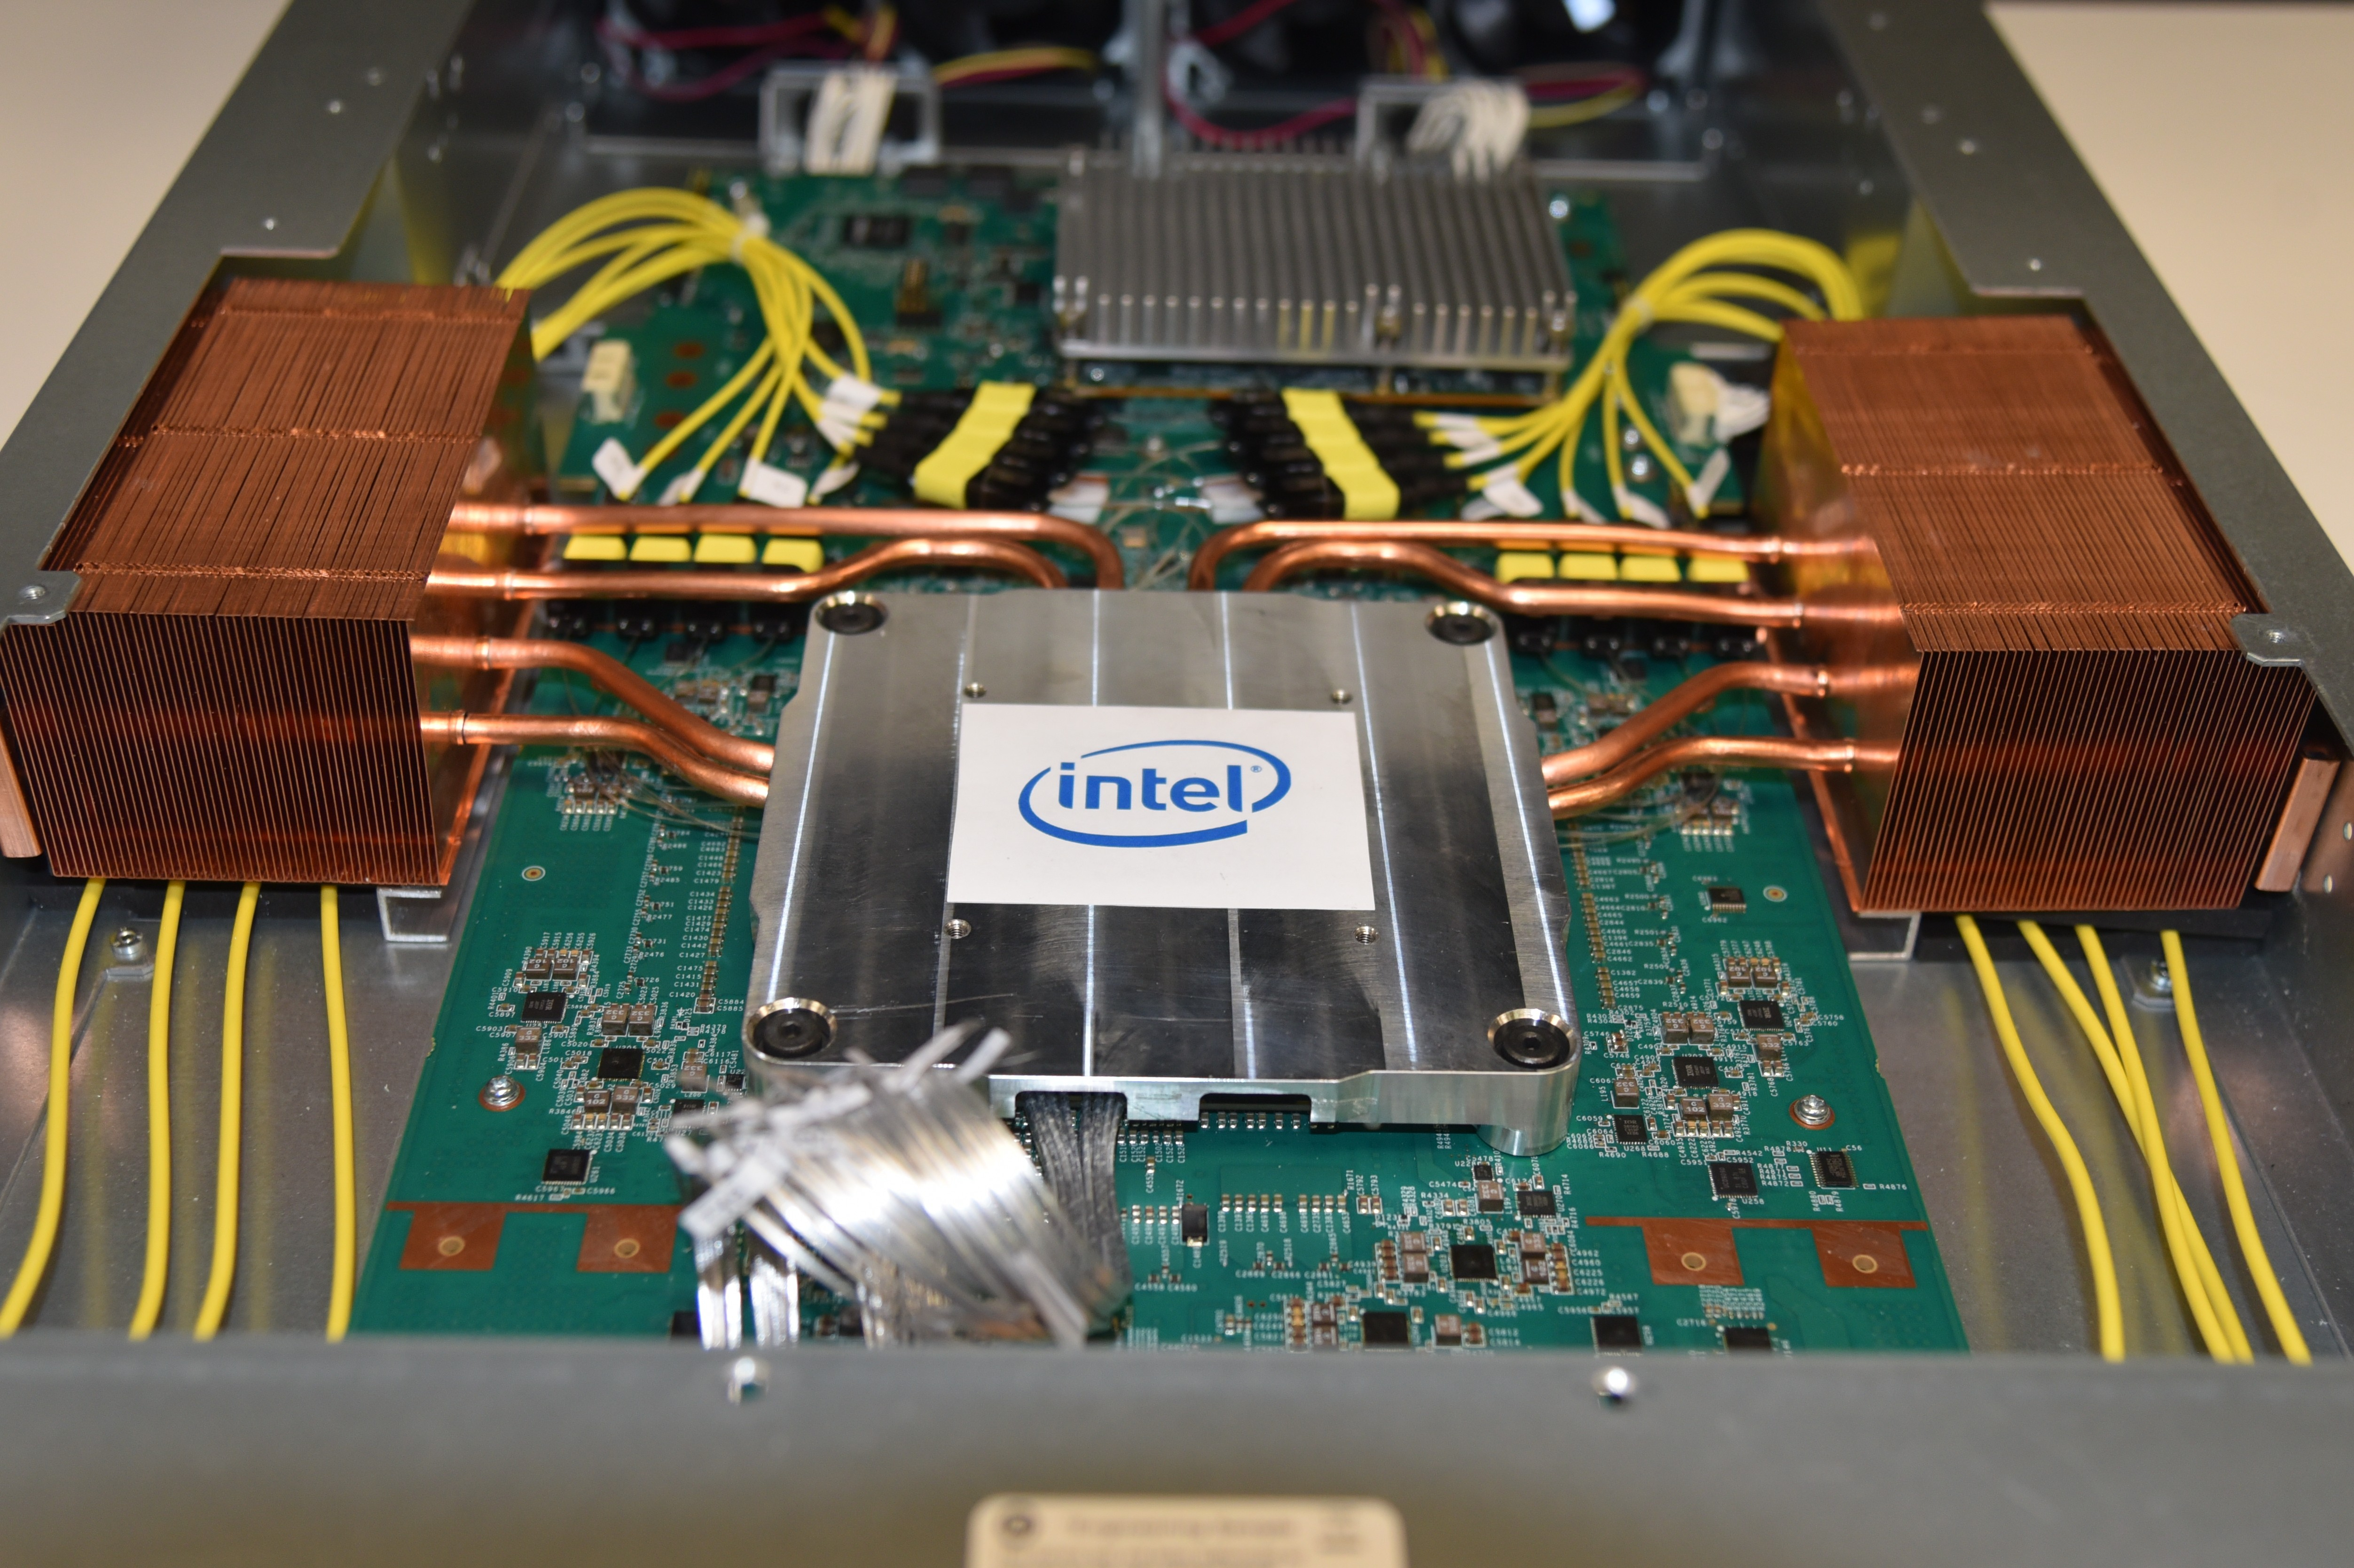 Intel-Co-Packaged-Optics-Ethernet-Switch-3